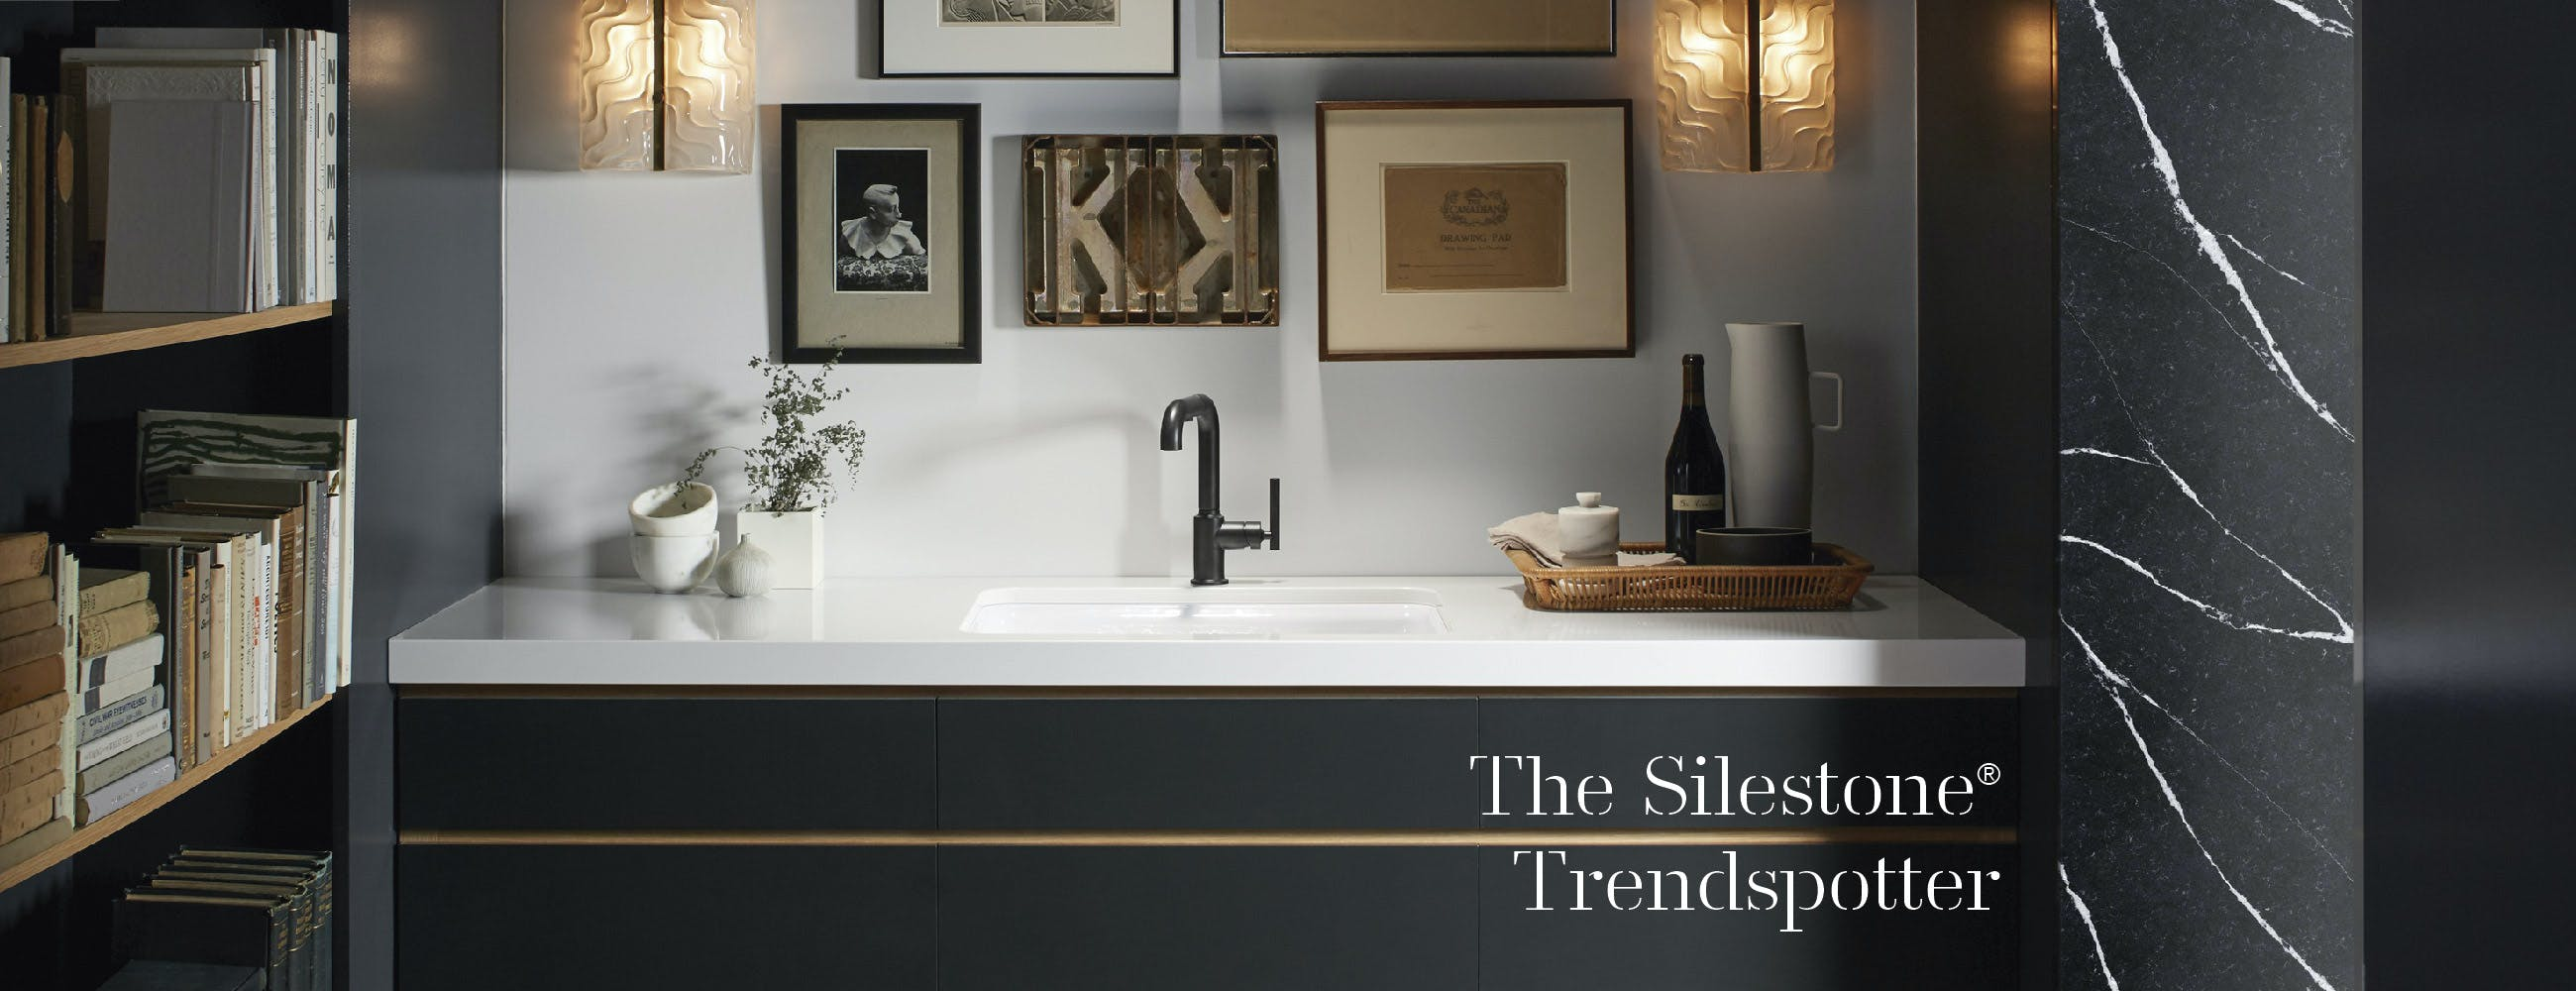 silestone the leader in quartz surfaces for kitchens and baths tops on top silestone trendspotter